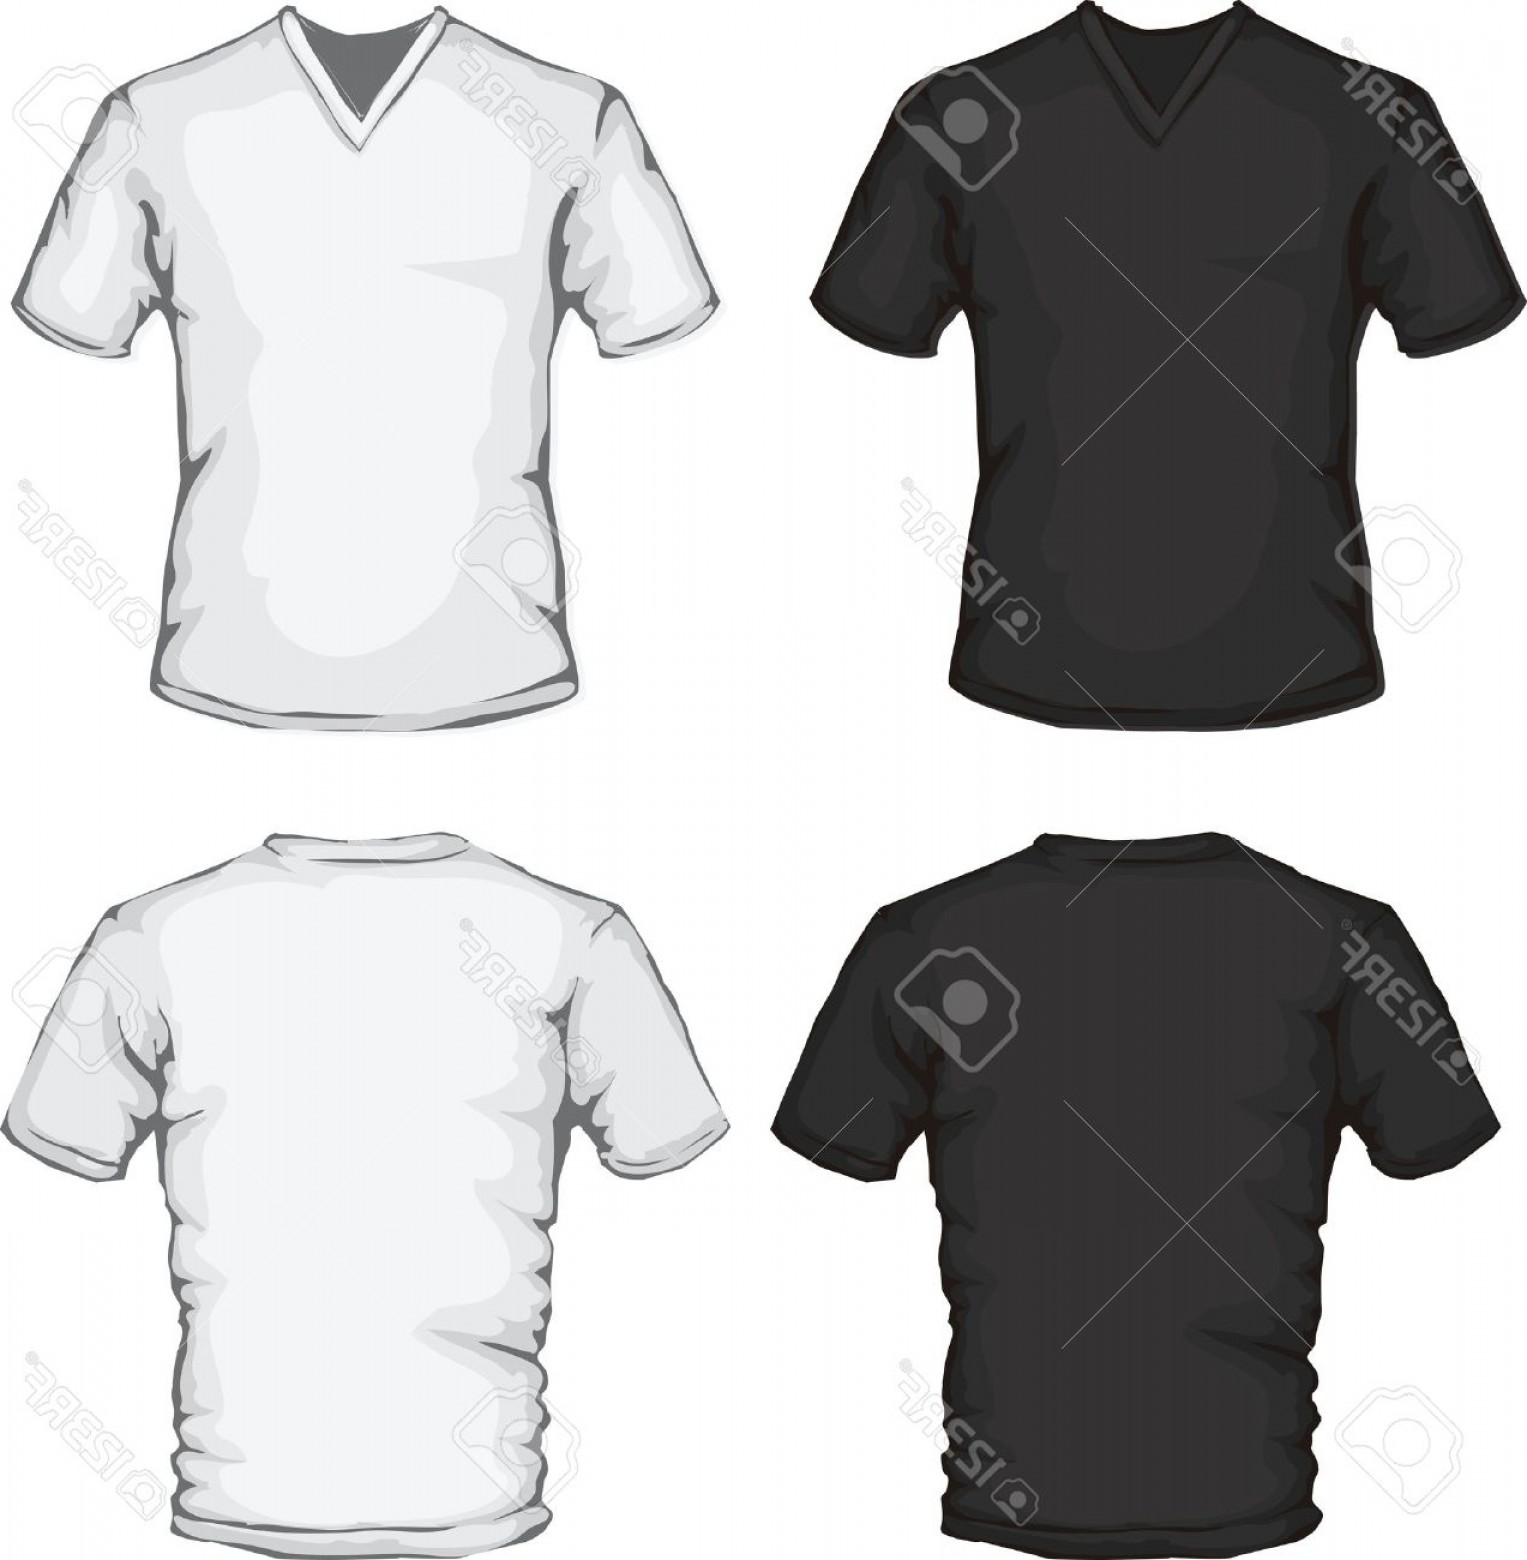 V-Neck Template Vector: Photovector Illustration Of V Neck Shirt Template In Black And White Front And Back Design